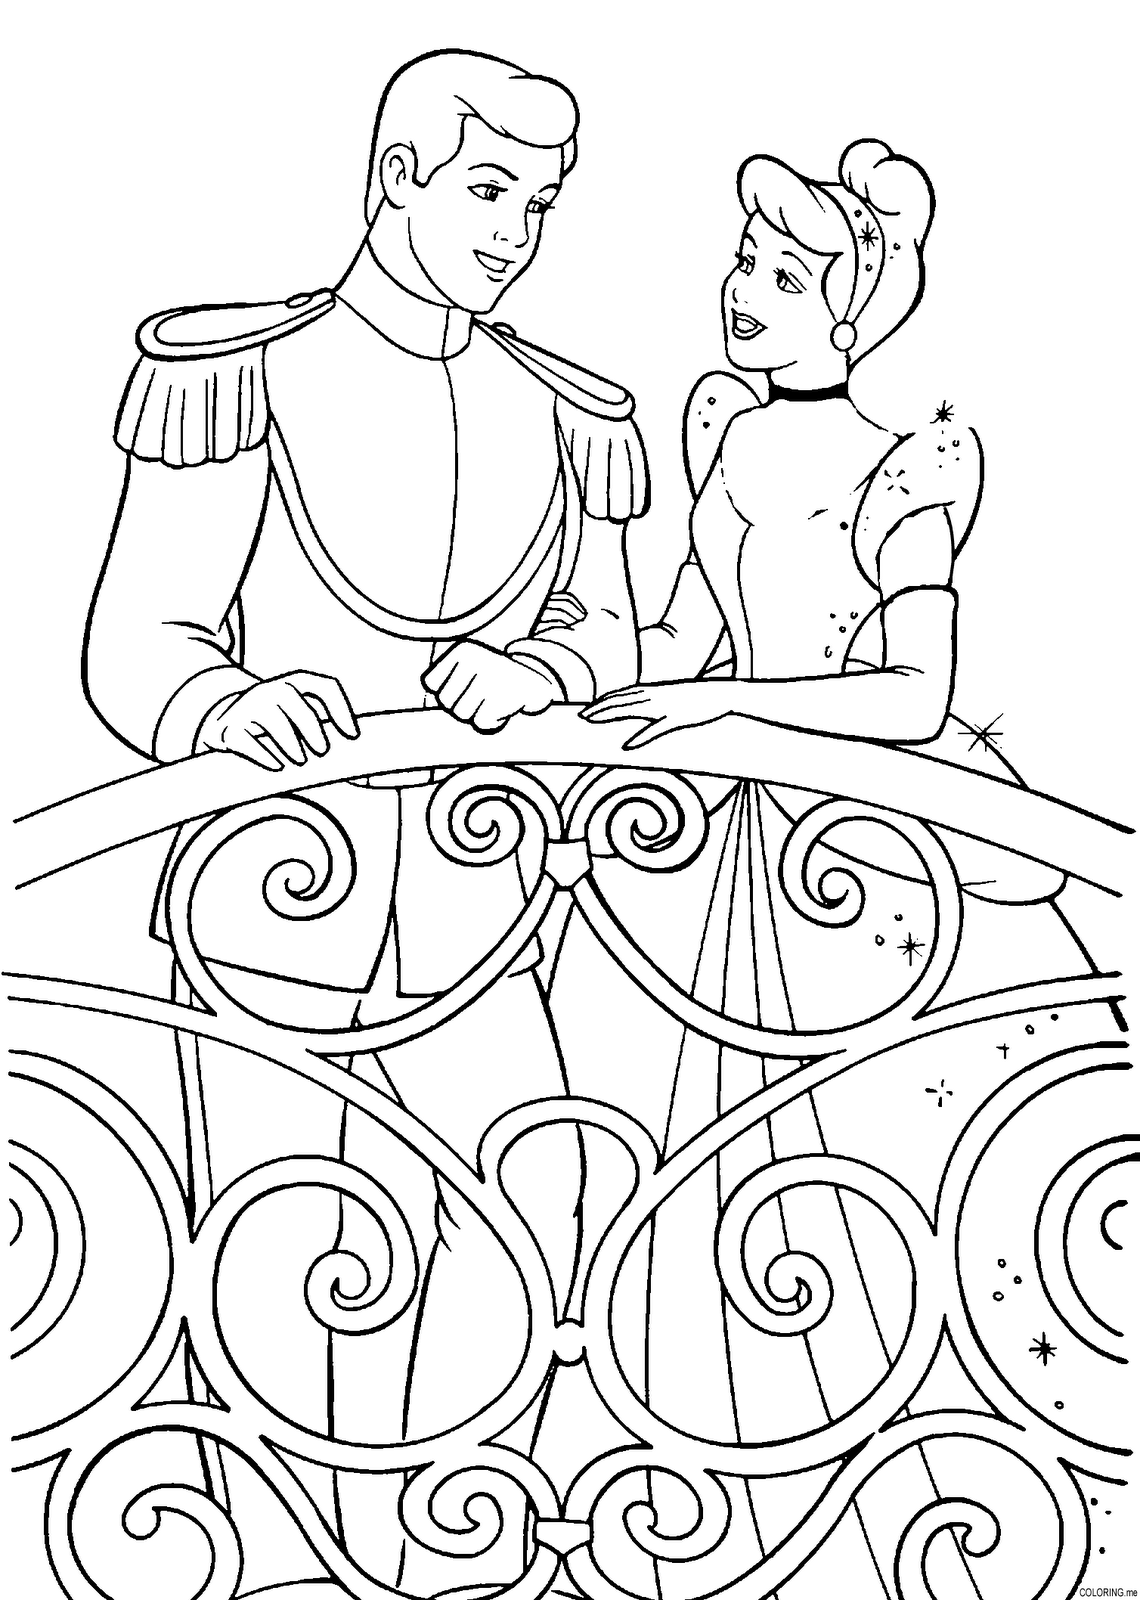 coloring kids pictures kids coloring pages kids online world blog pictures kids coloring